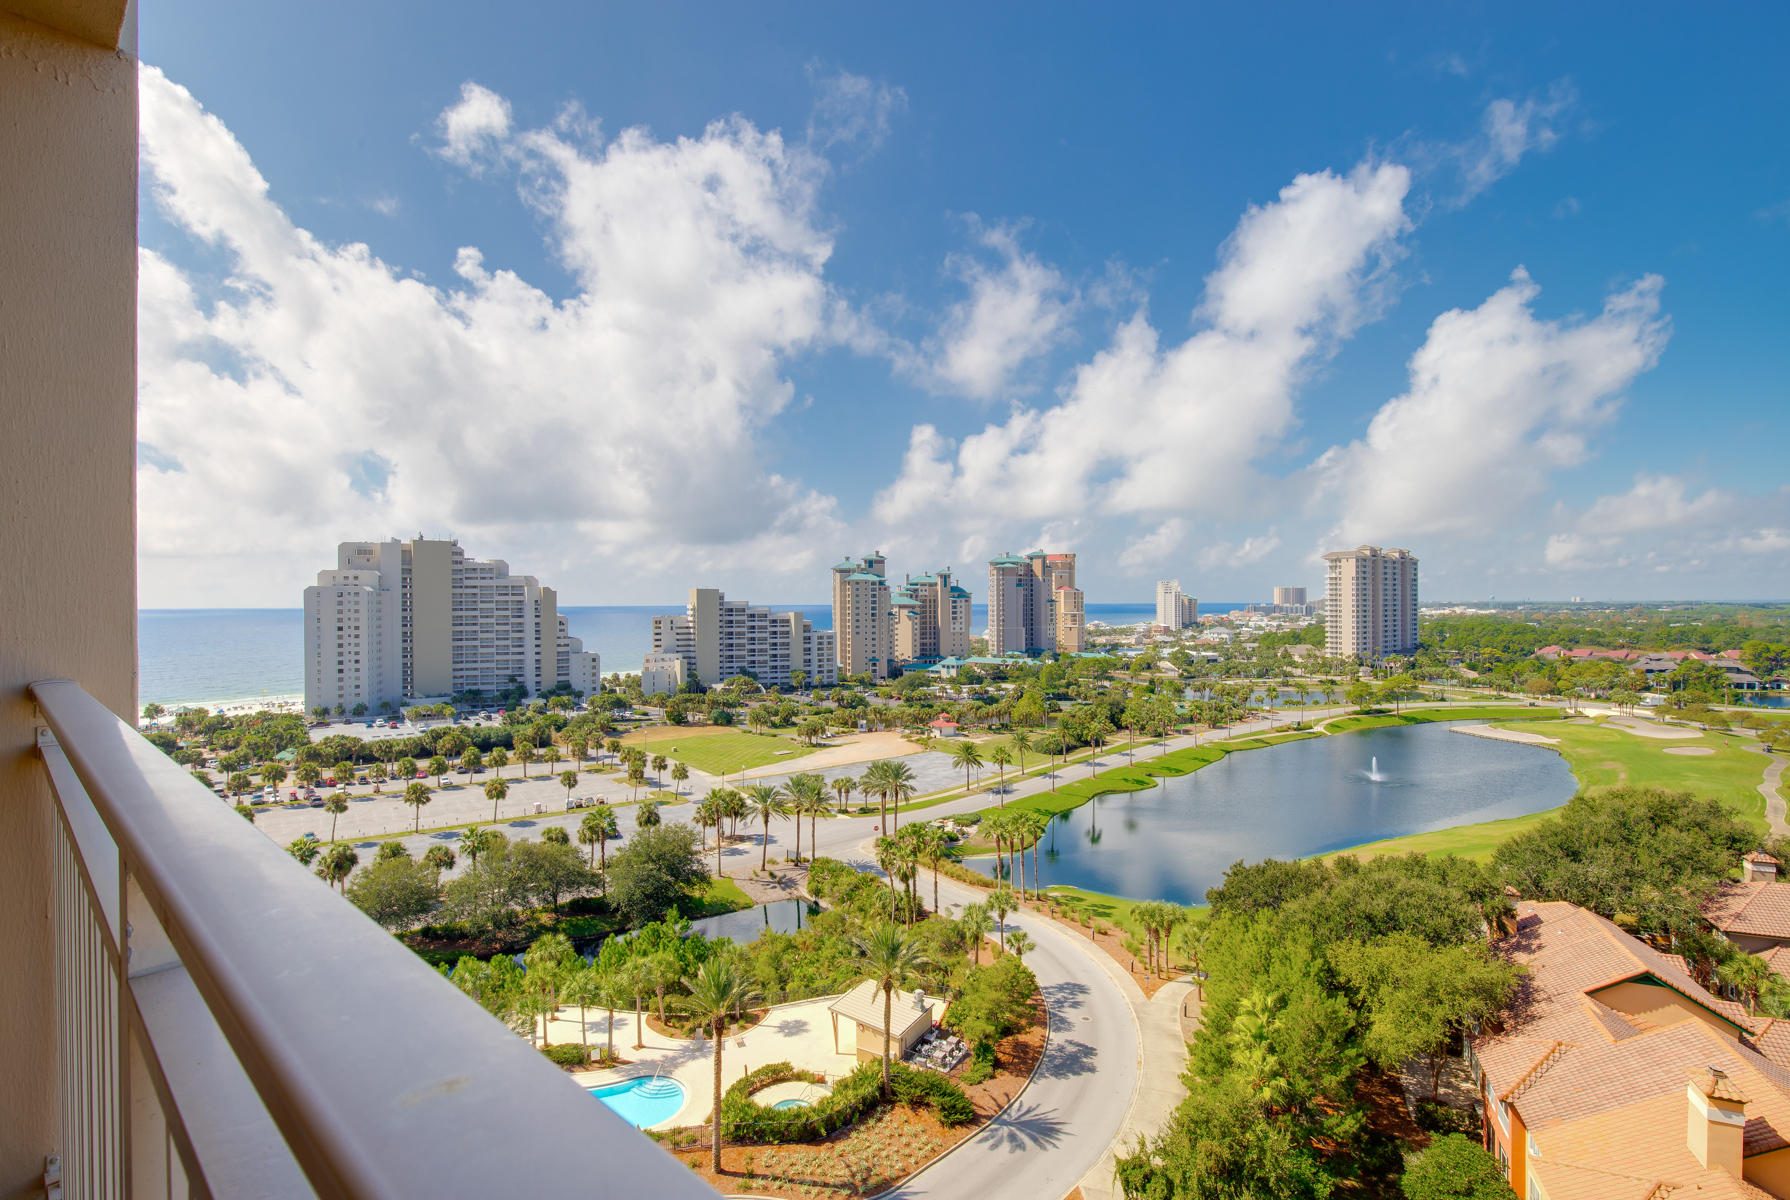 11th floor - 1 BR & 1 BA  Luau! Being sold fully furnished and currently on vacation rental program,